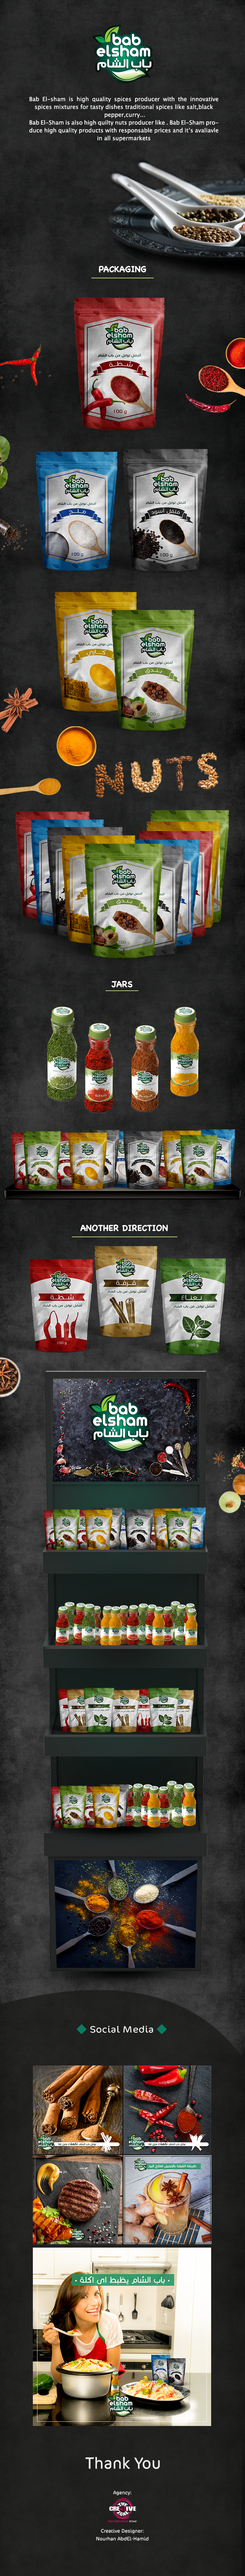 social_media #packaging #herbs #spices #nuts #pepper